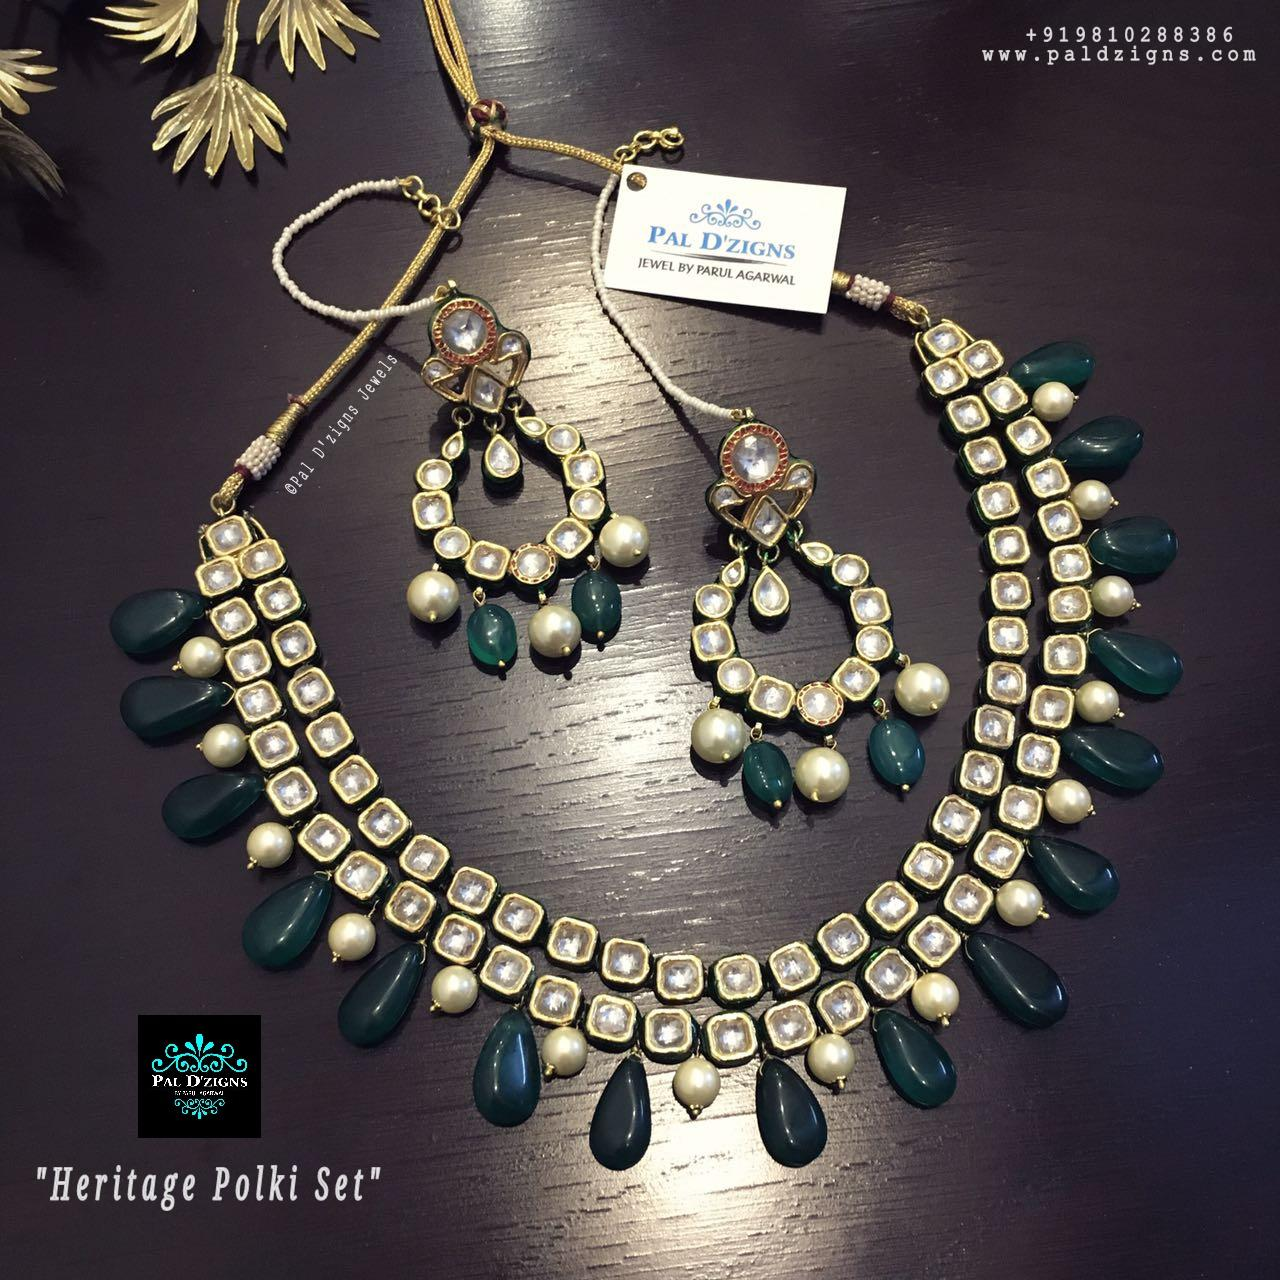 Heritage polki Necklace Set